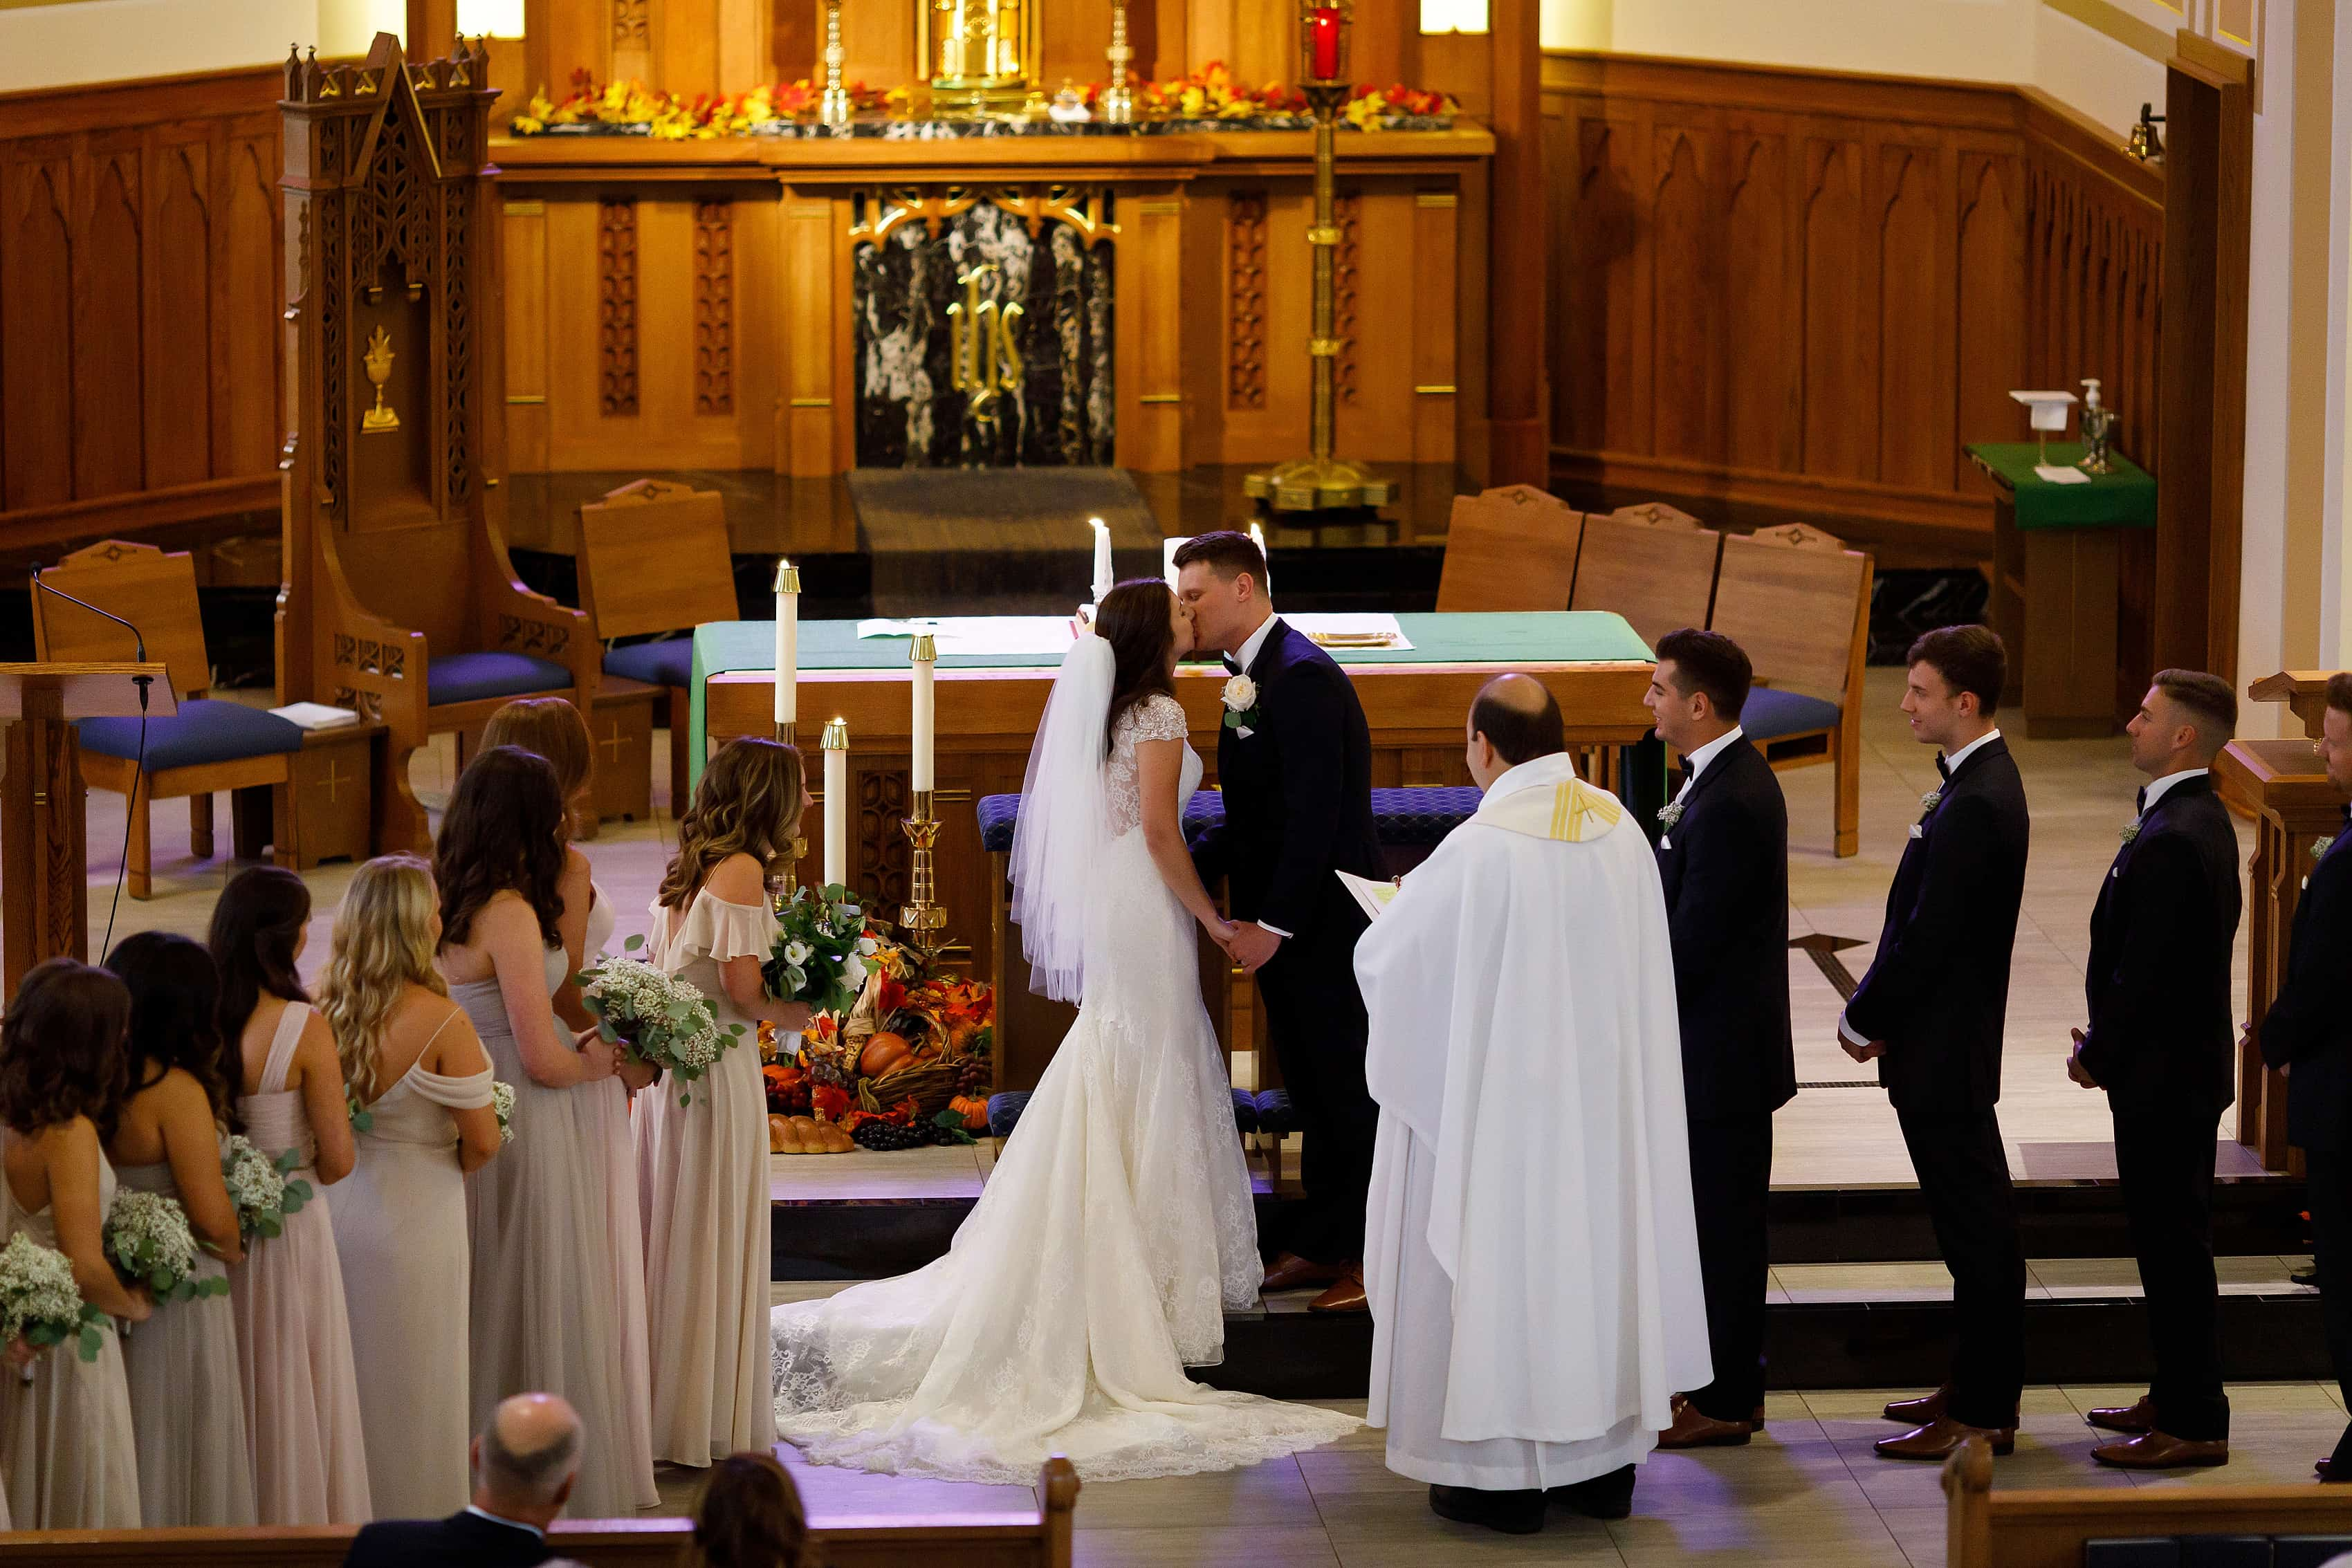 Bride and groom share first kiss at the alter during wedding ceremony at St. Francis Church in Lake Geneva, Wisconsin